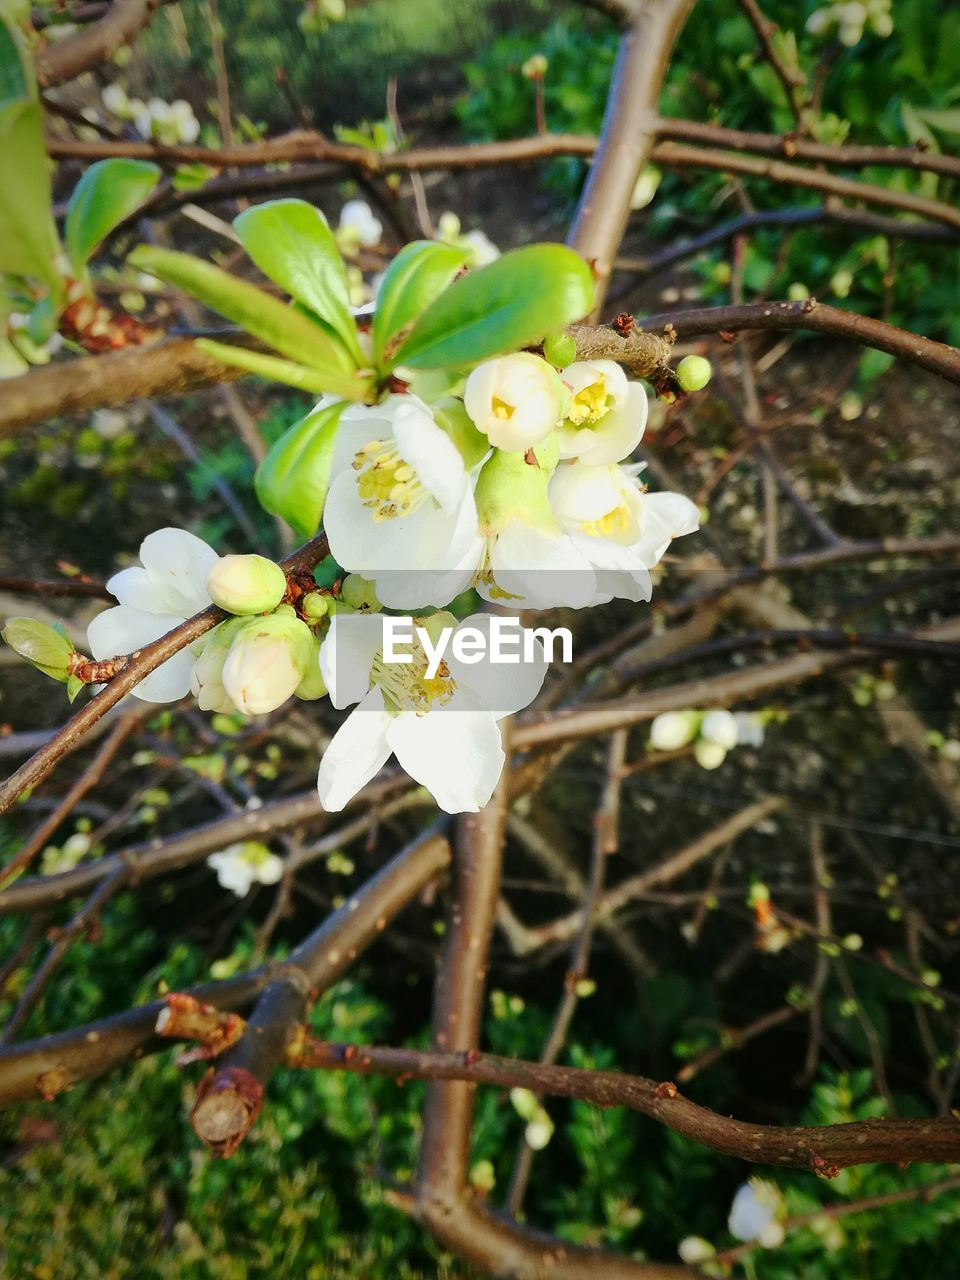 growth, flower, fragility, white color, nature, beauty in nature, tree, blossom, freshness, twig, day, botany, no people, orchard, close-up, apple blossom, focus on foreground, petal, branch, outdoors, springtime, plant, flower head, blooming